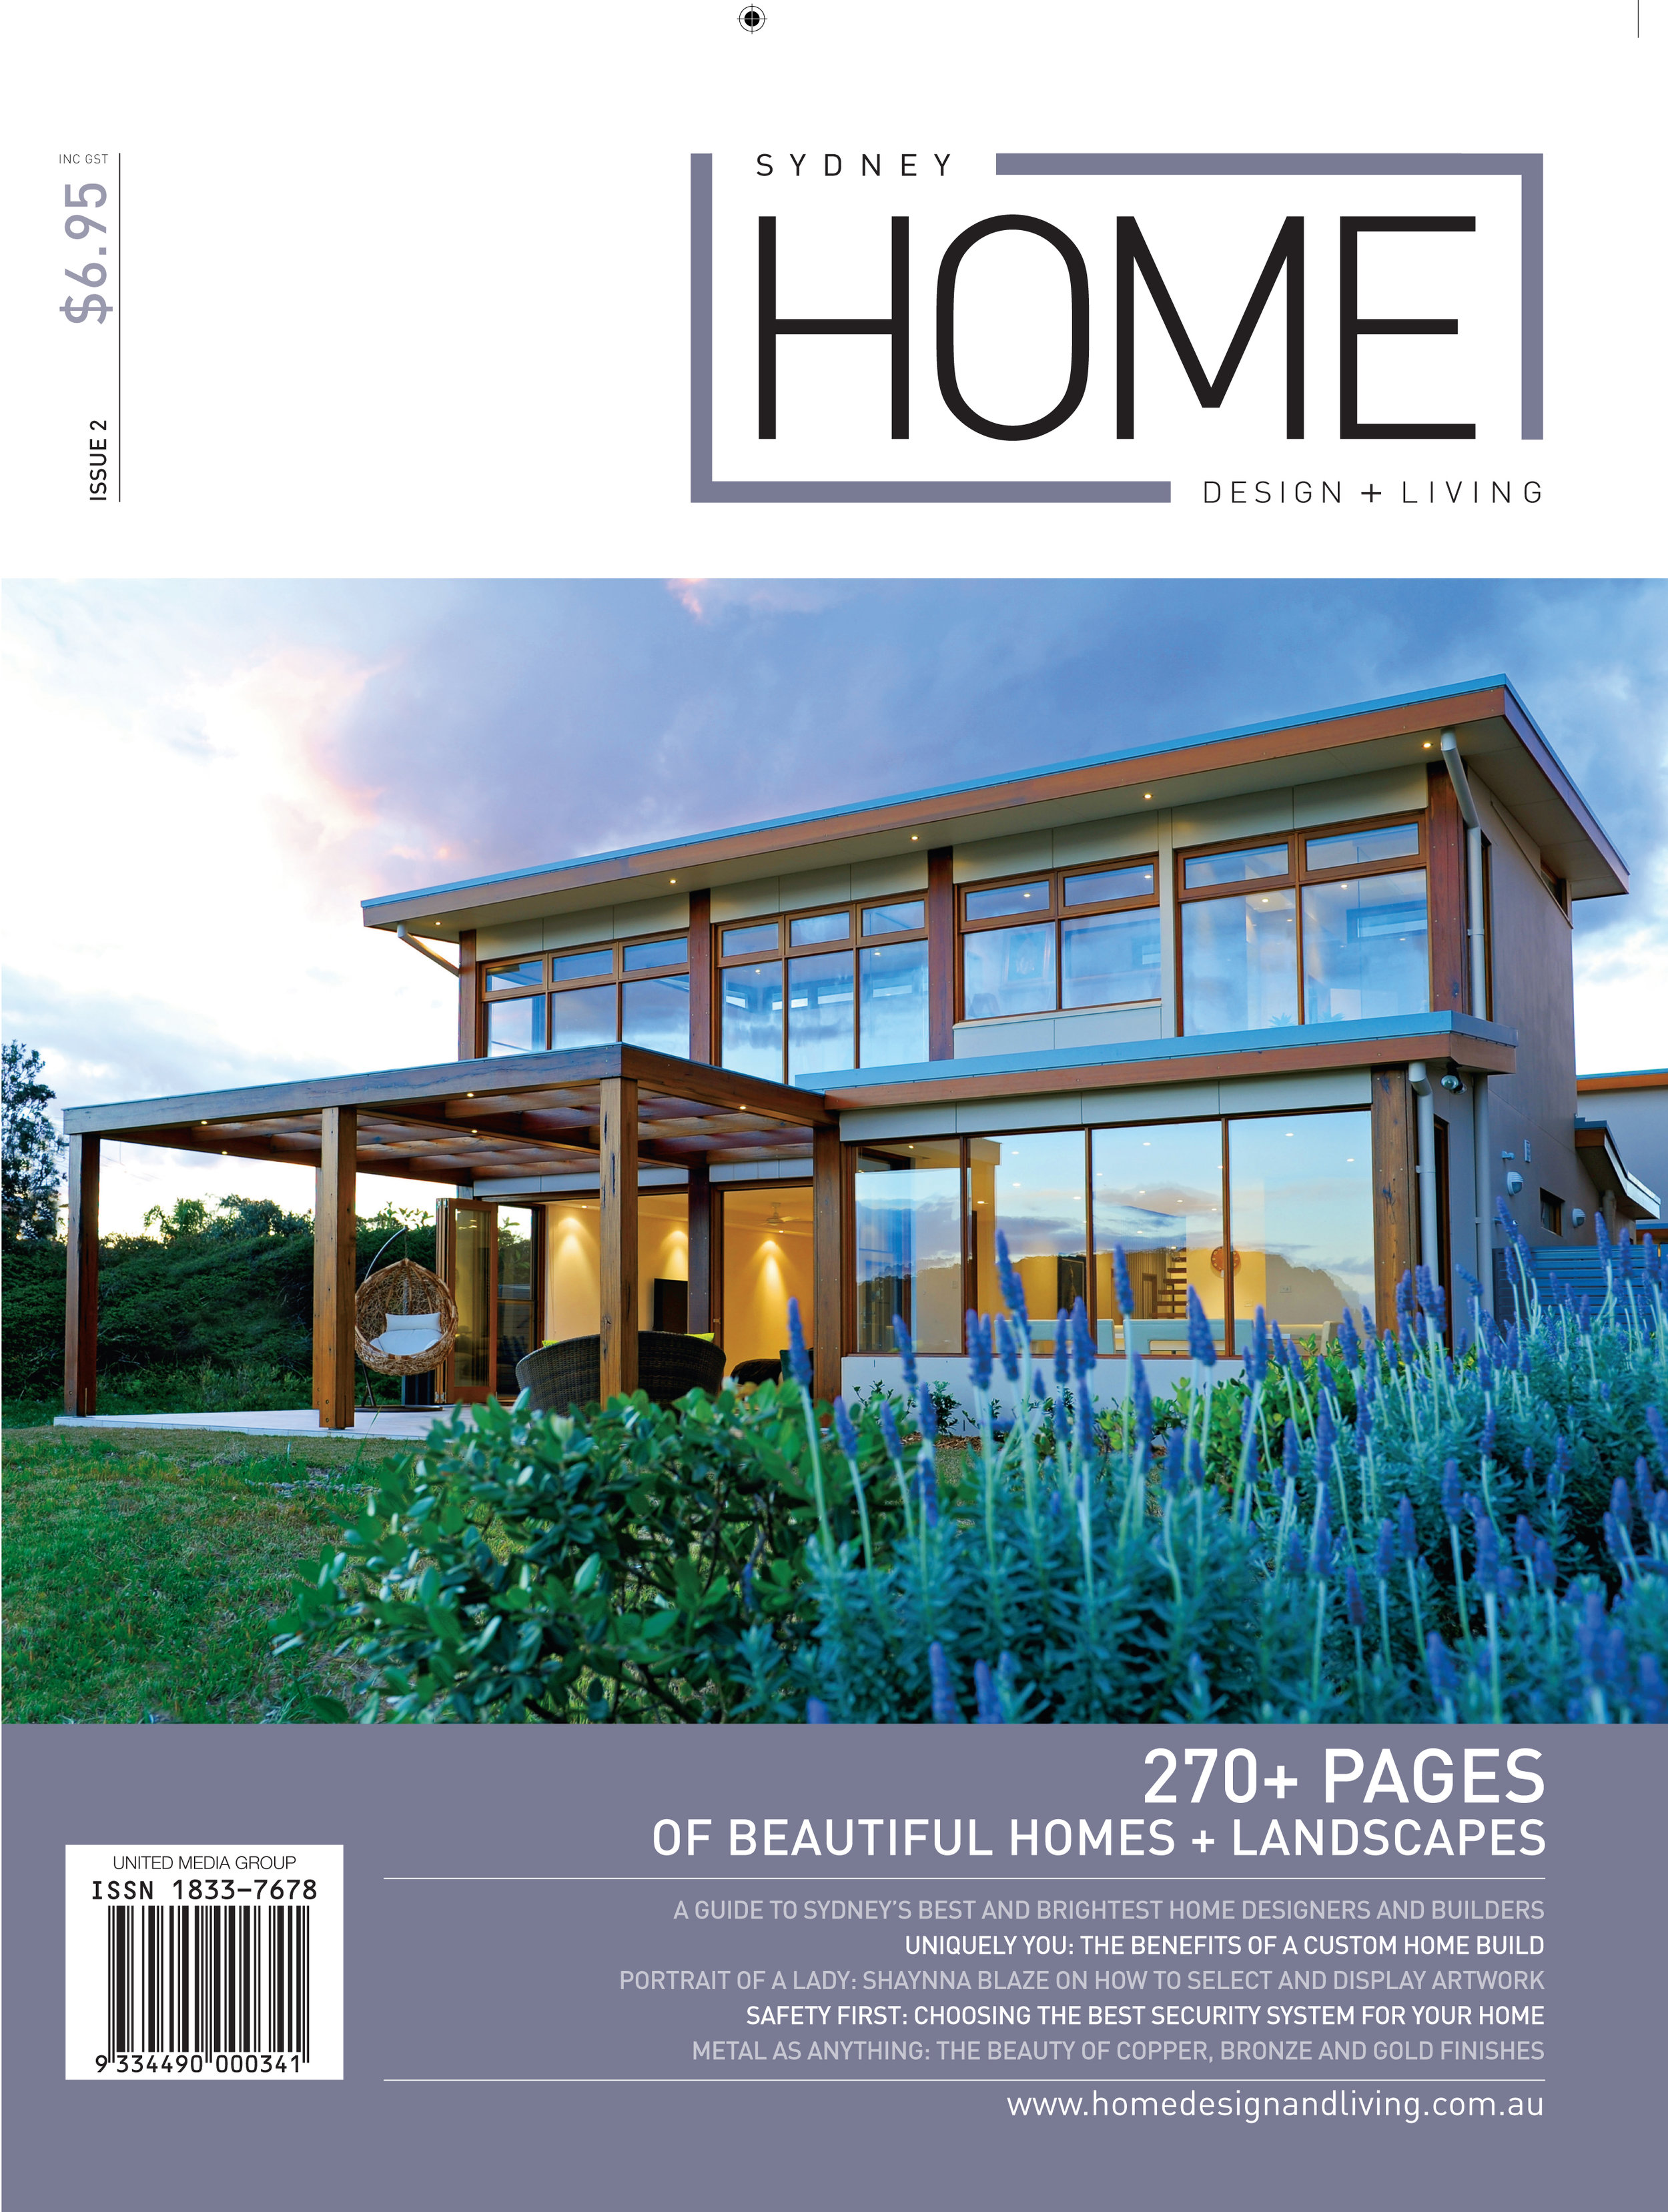 Hemp Gallery featured in Sydney Home Design and Living Magazine